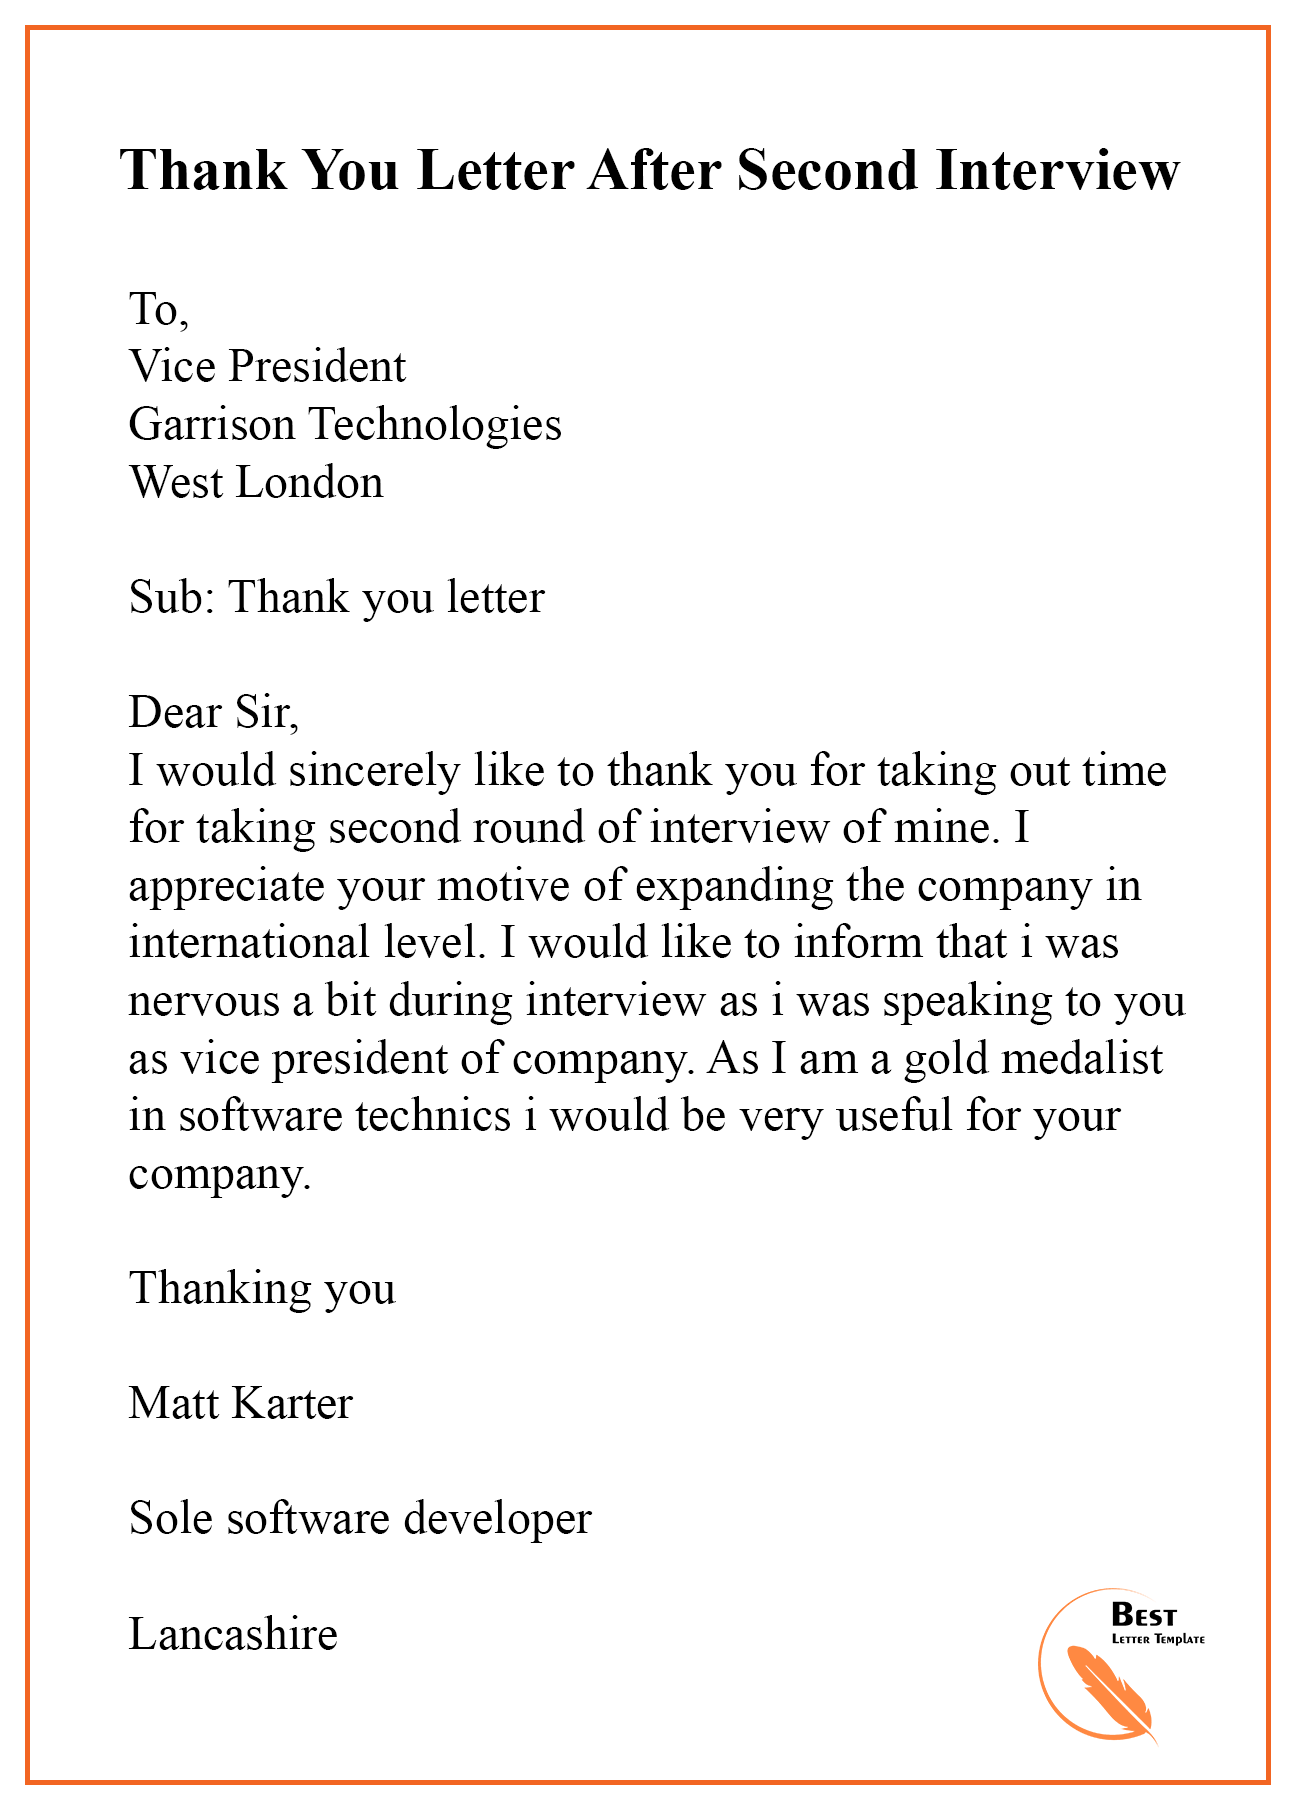 Thank You Letter Second Interview from bestlettertemplate.com